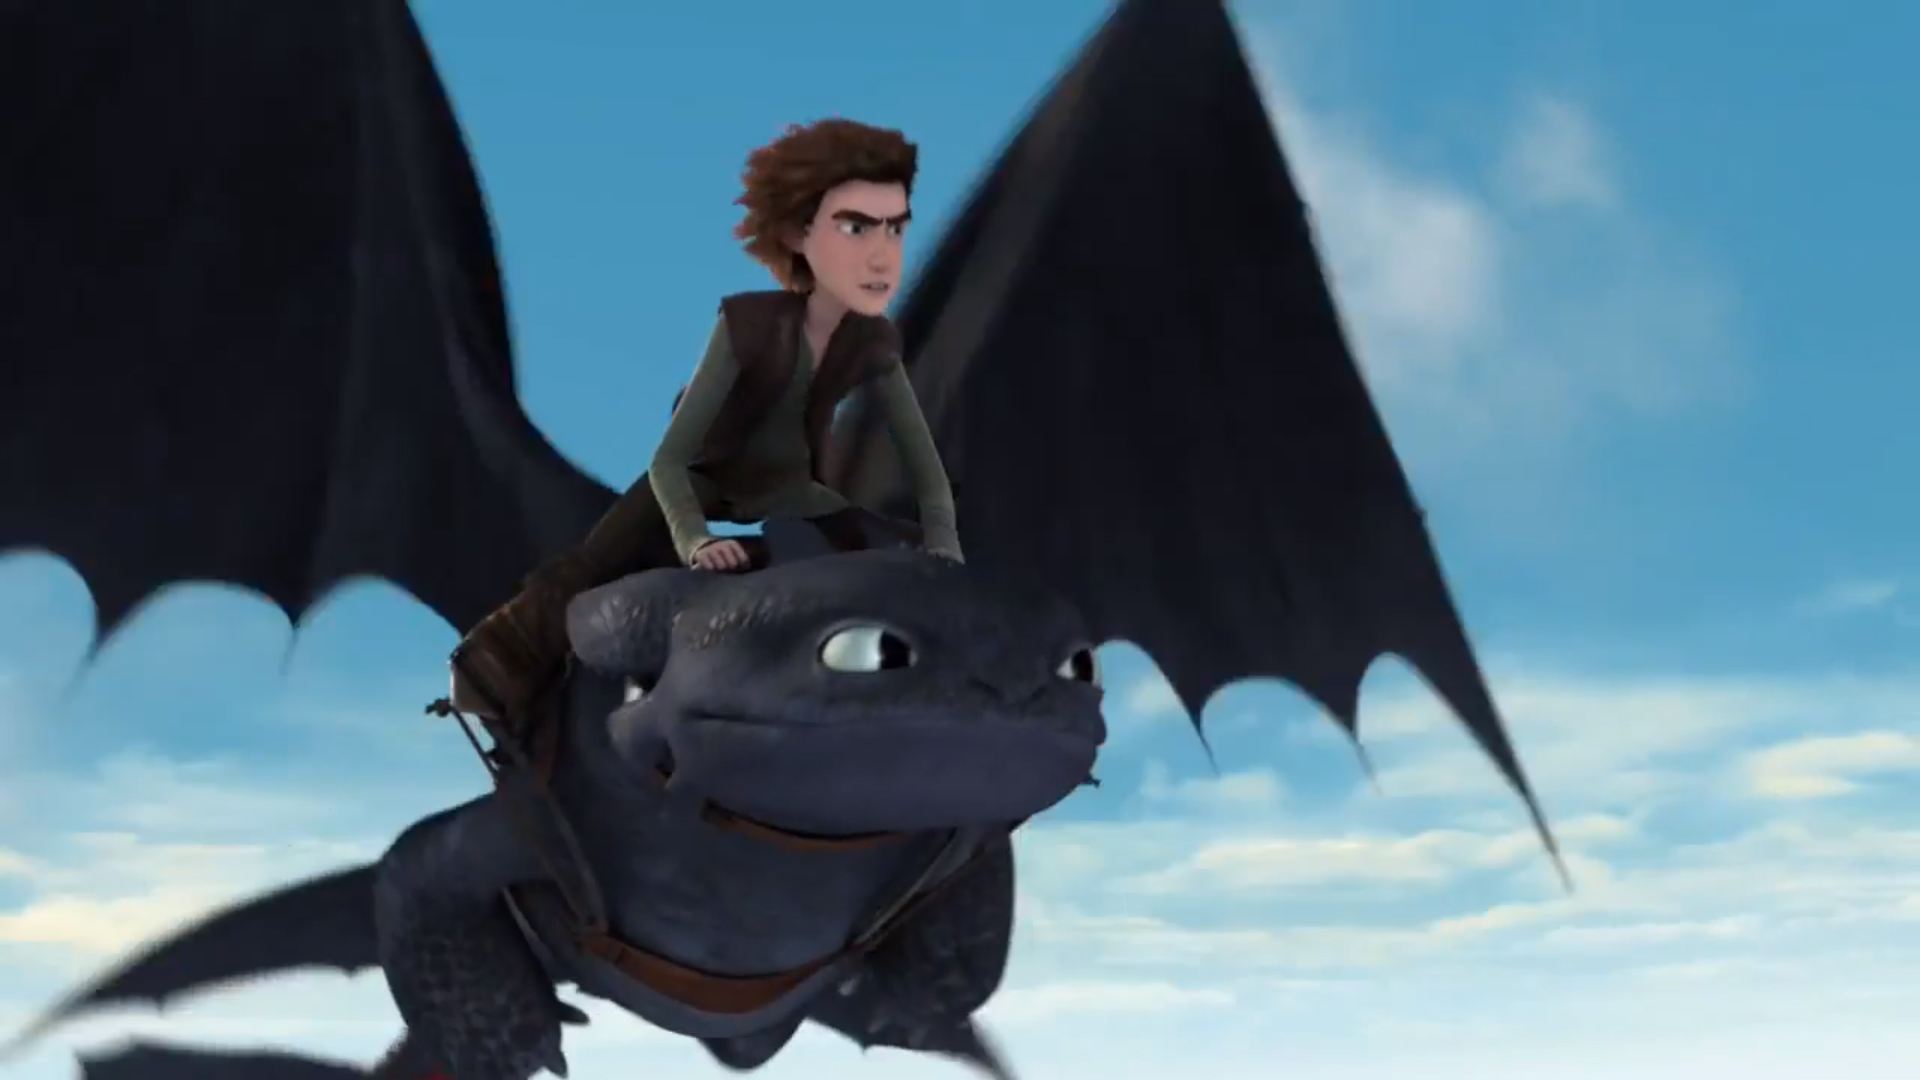 astrid how to train your dragon voice actor